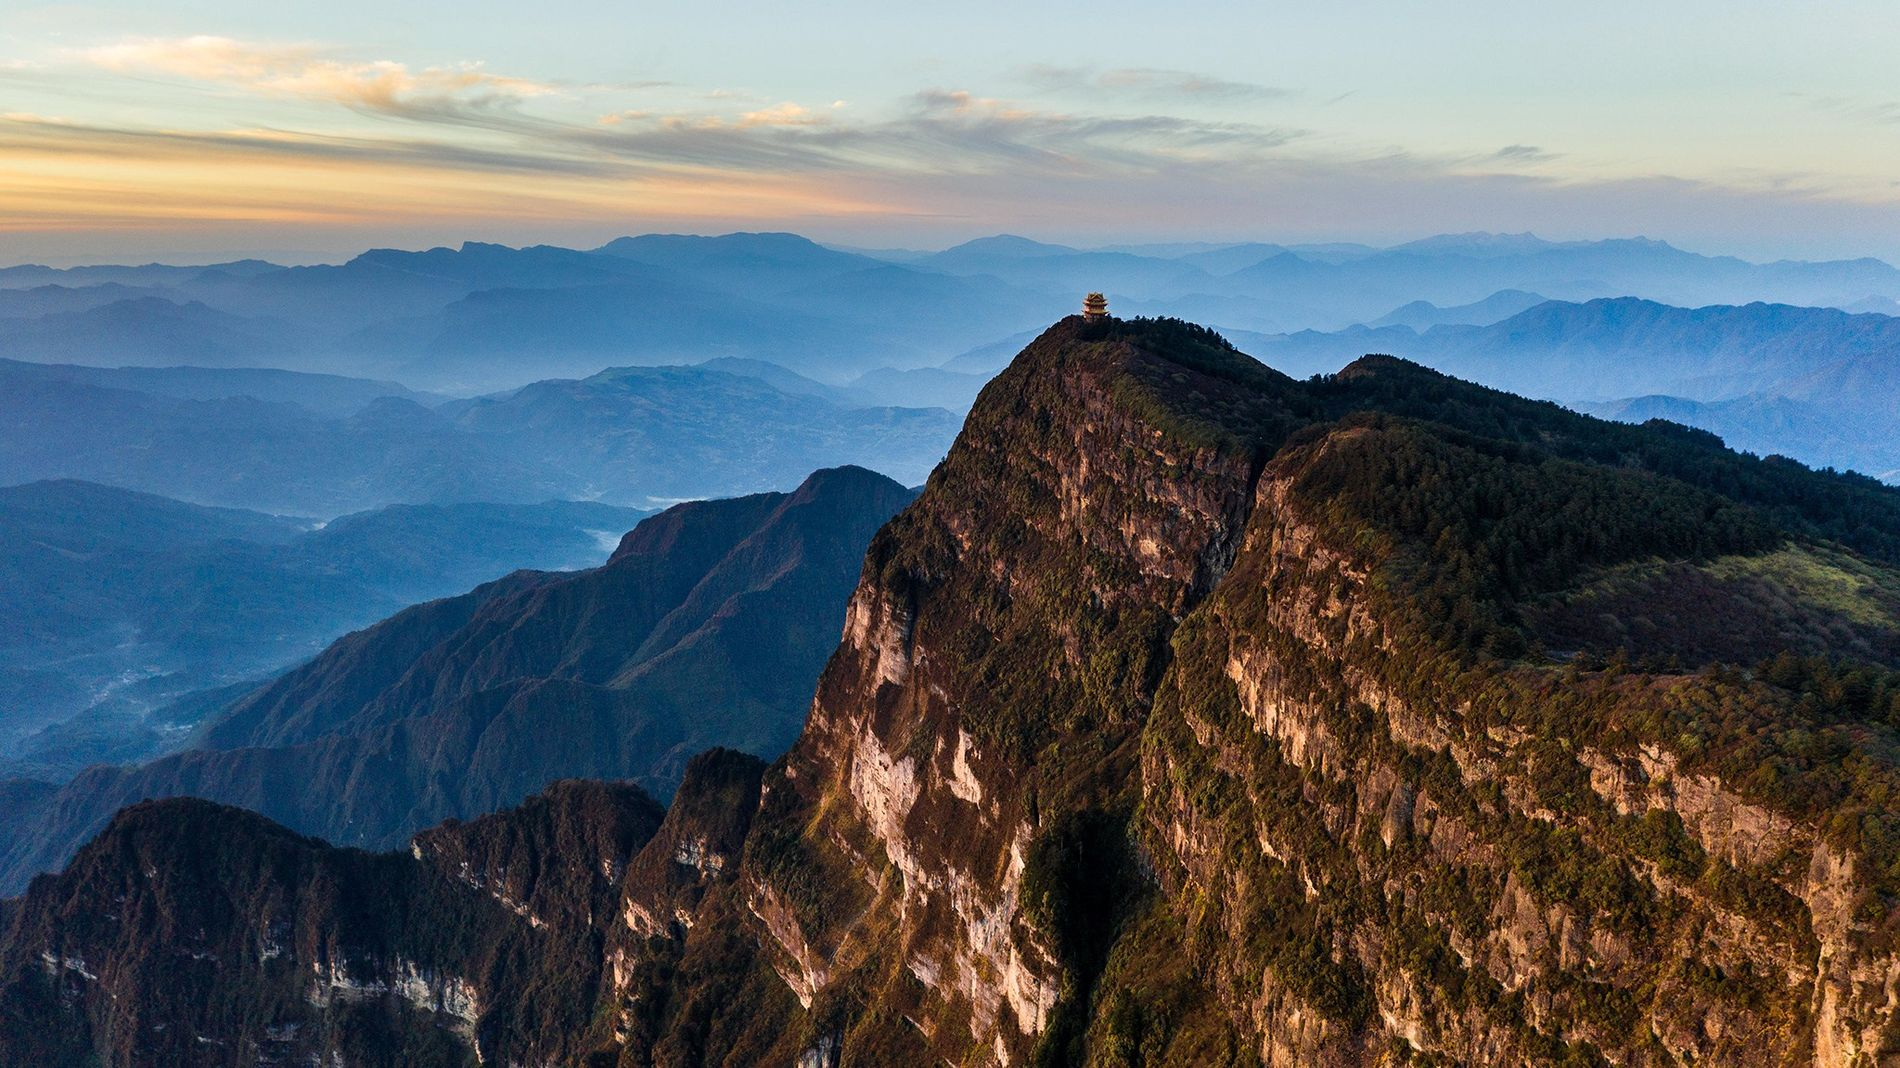 A temple sits perched on Emeishan Mountain in Sichuan Province, China. The surrounding countryside includes the ...